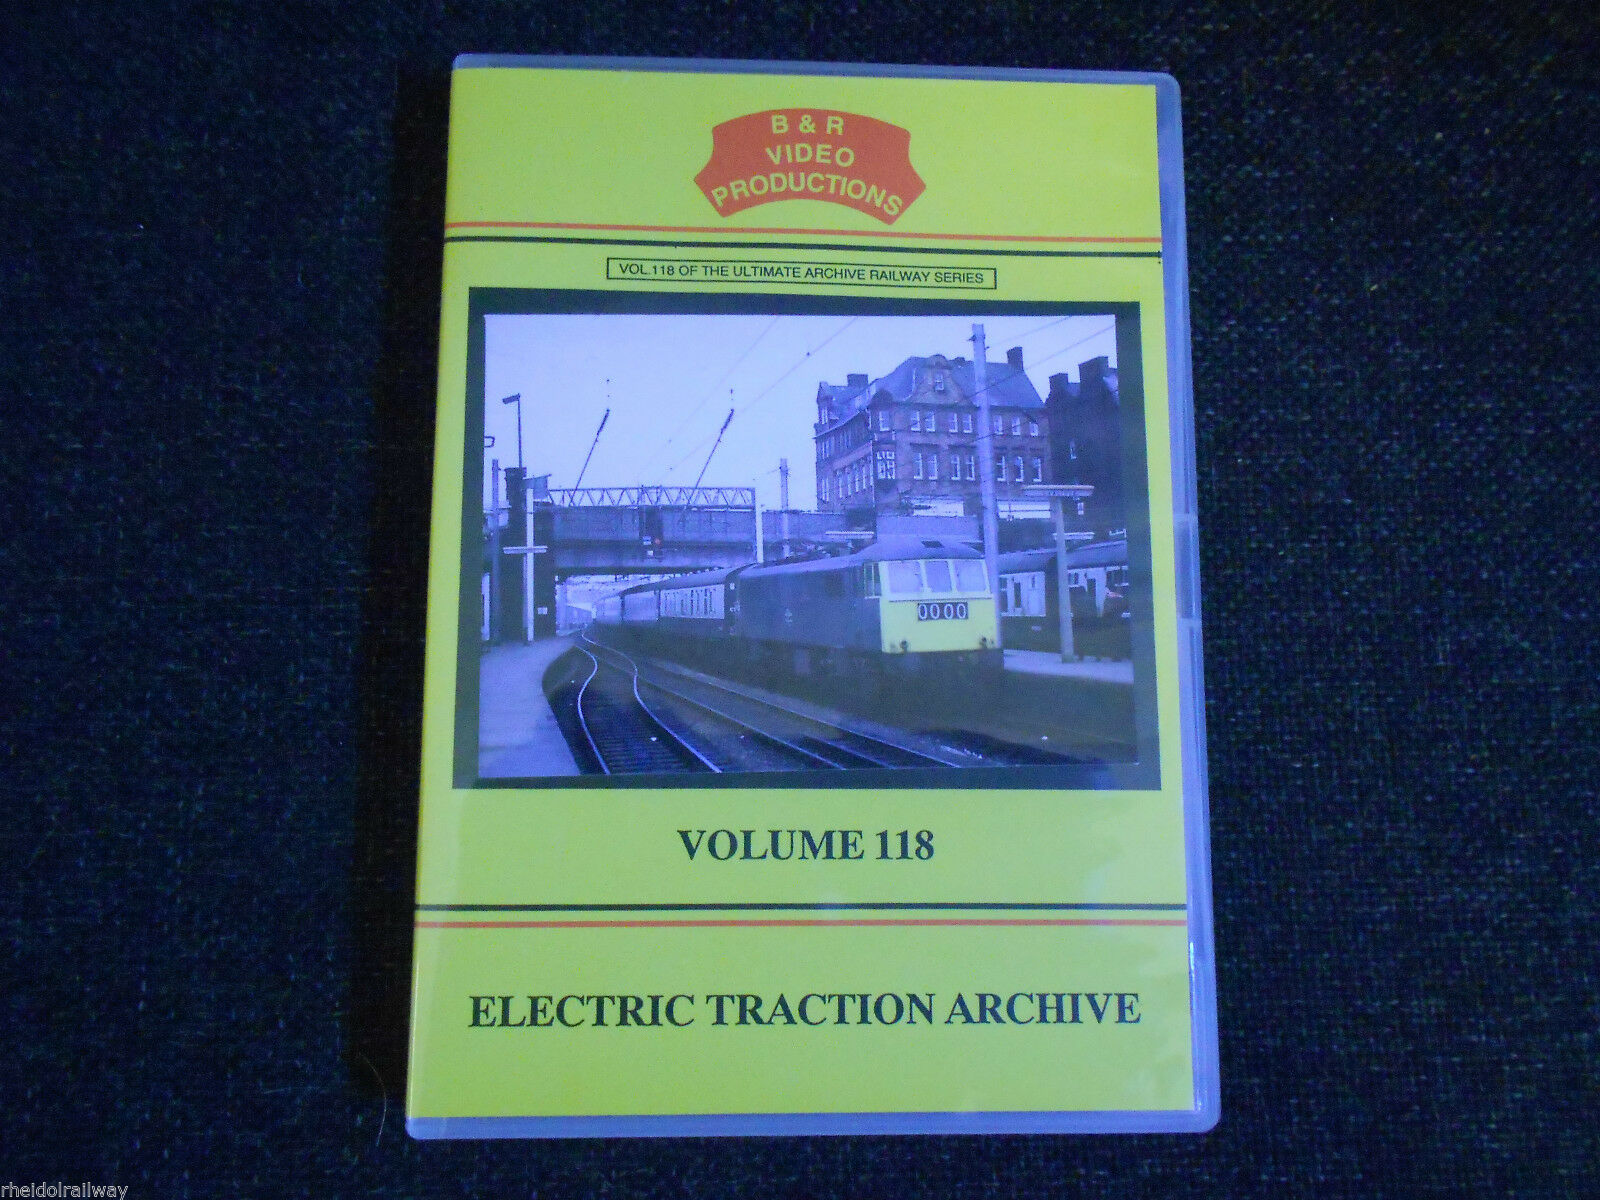 Volks Railway, Woodhead Route, Electric Traction Archive, B&R Vol 118 DVD